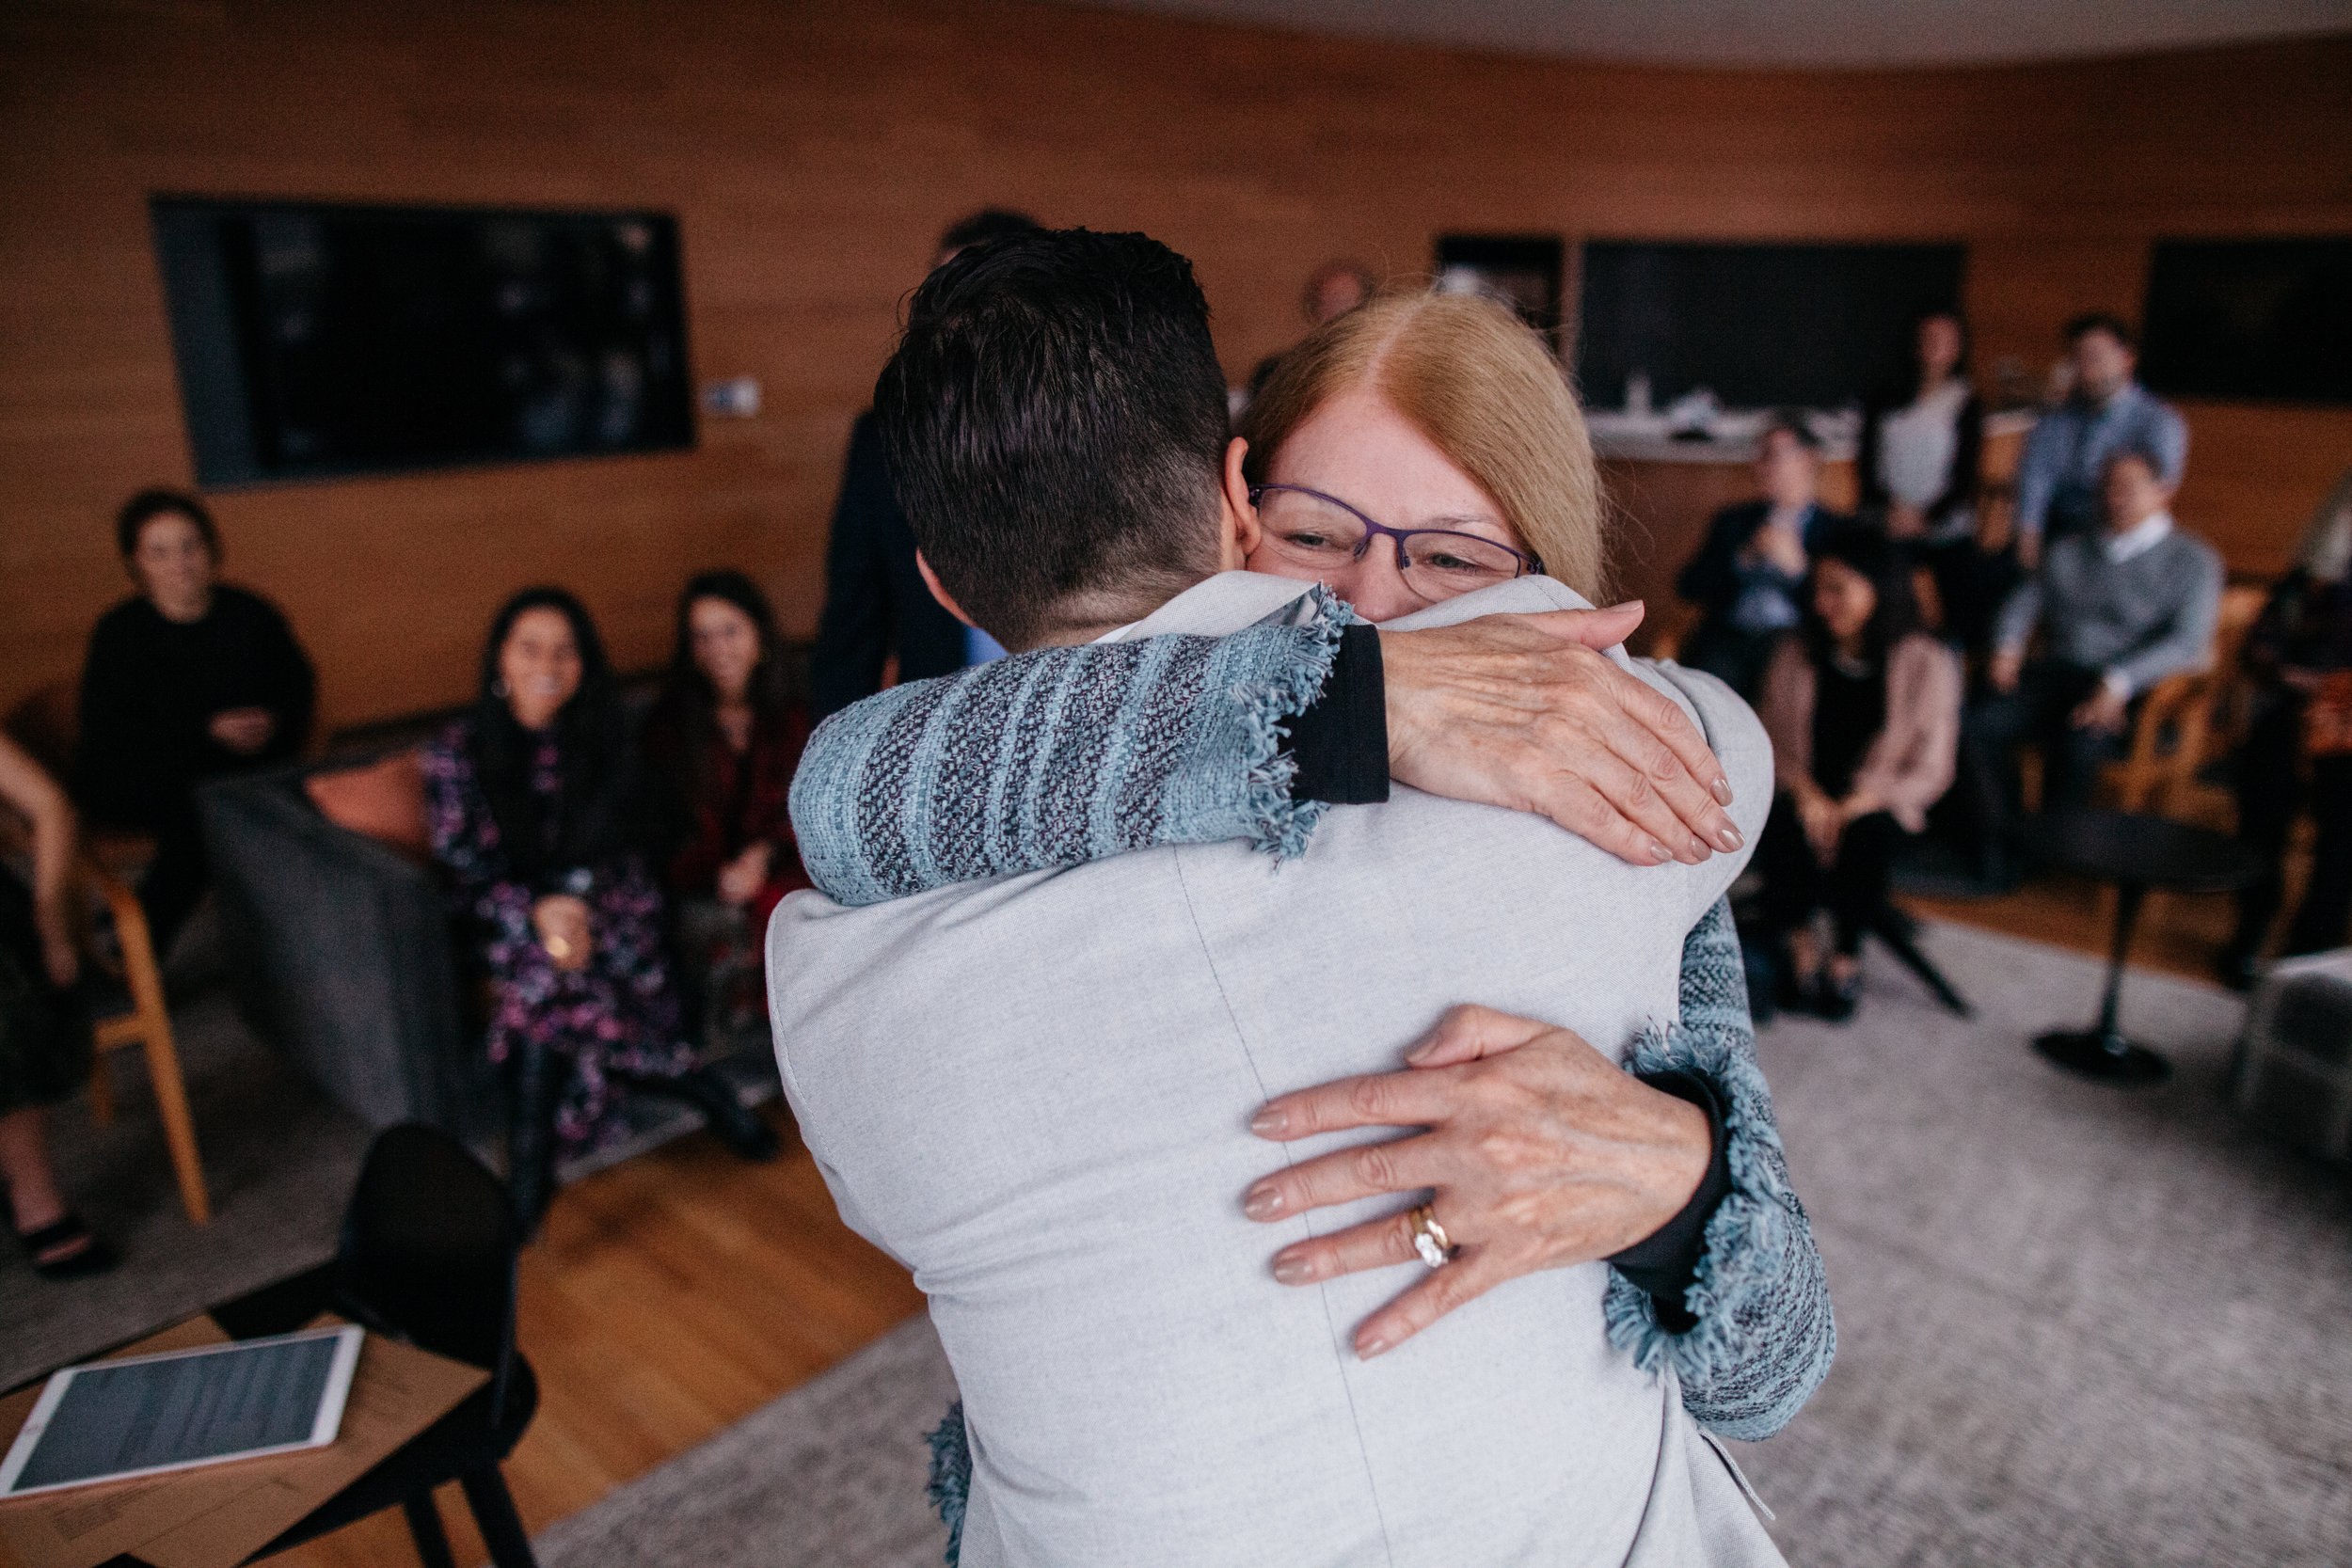 The mother of the groom hugs her son